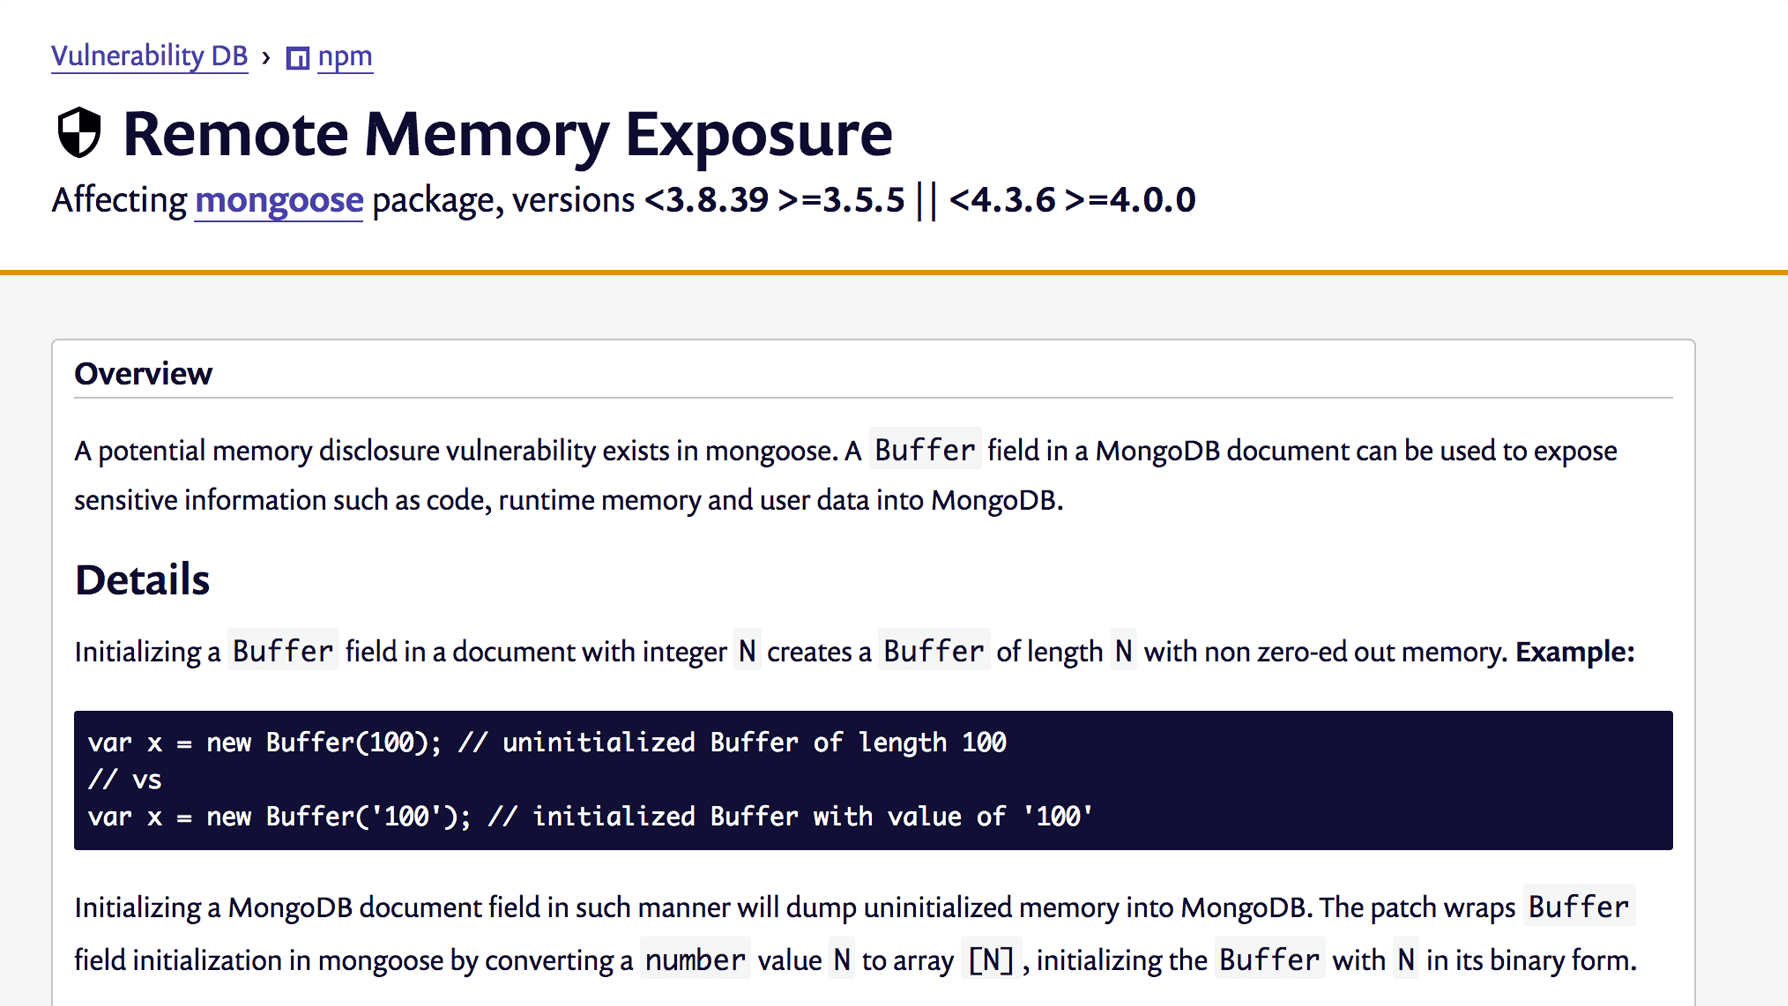 remote memory exposure vulnerability in mongoose